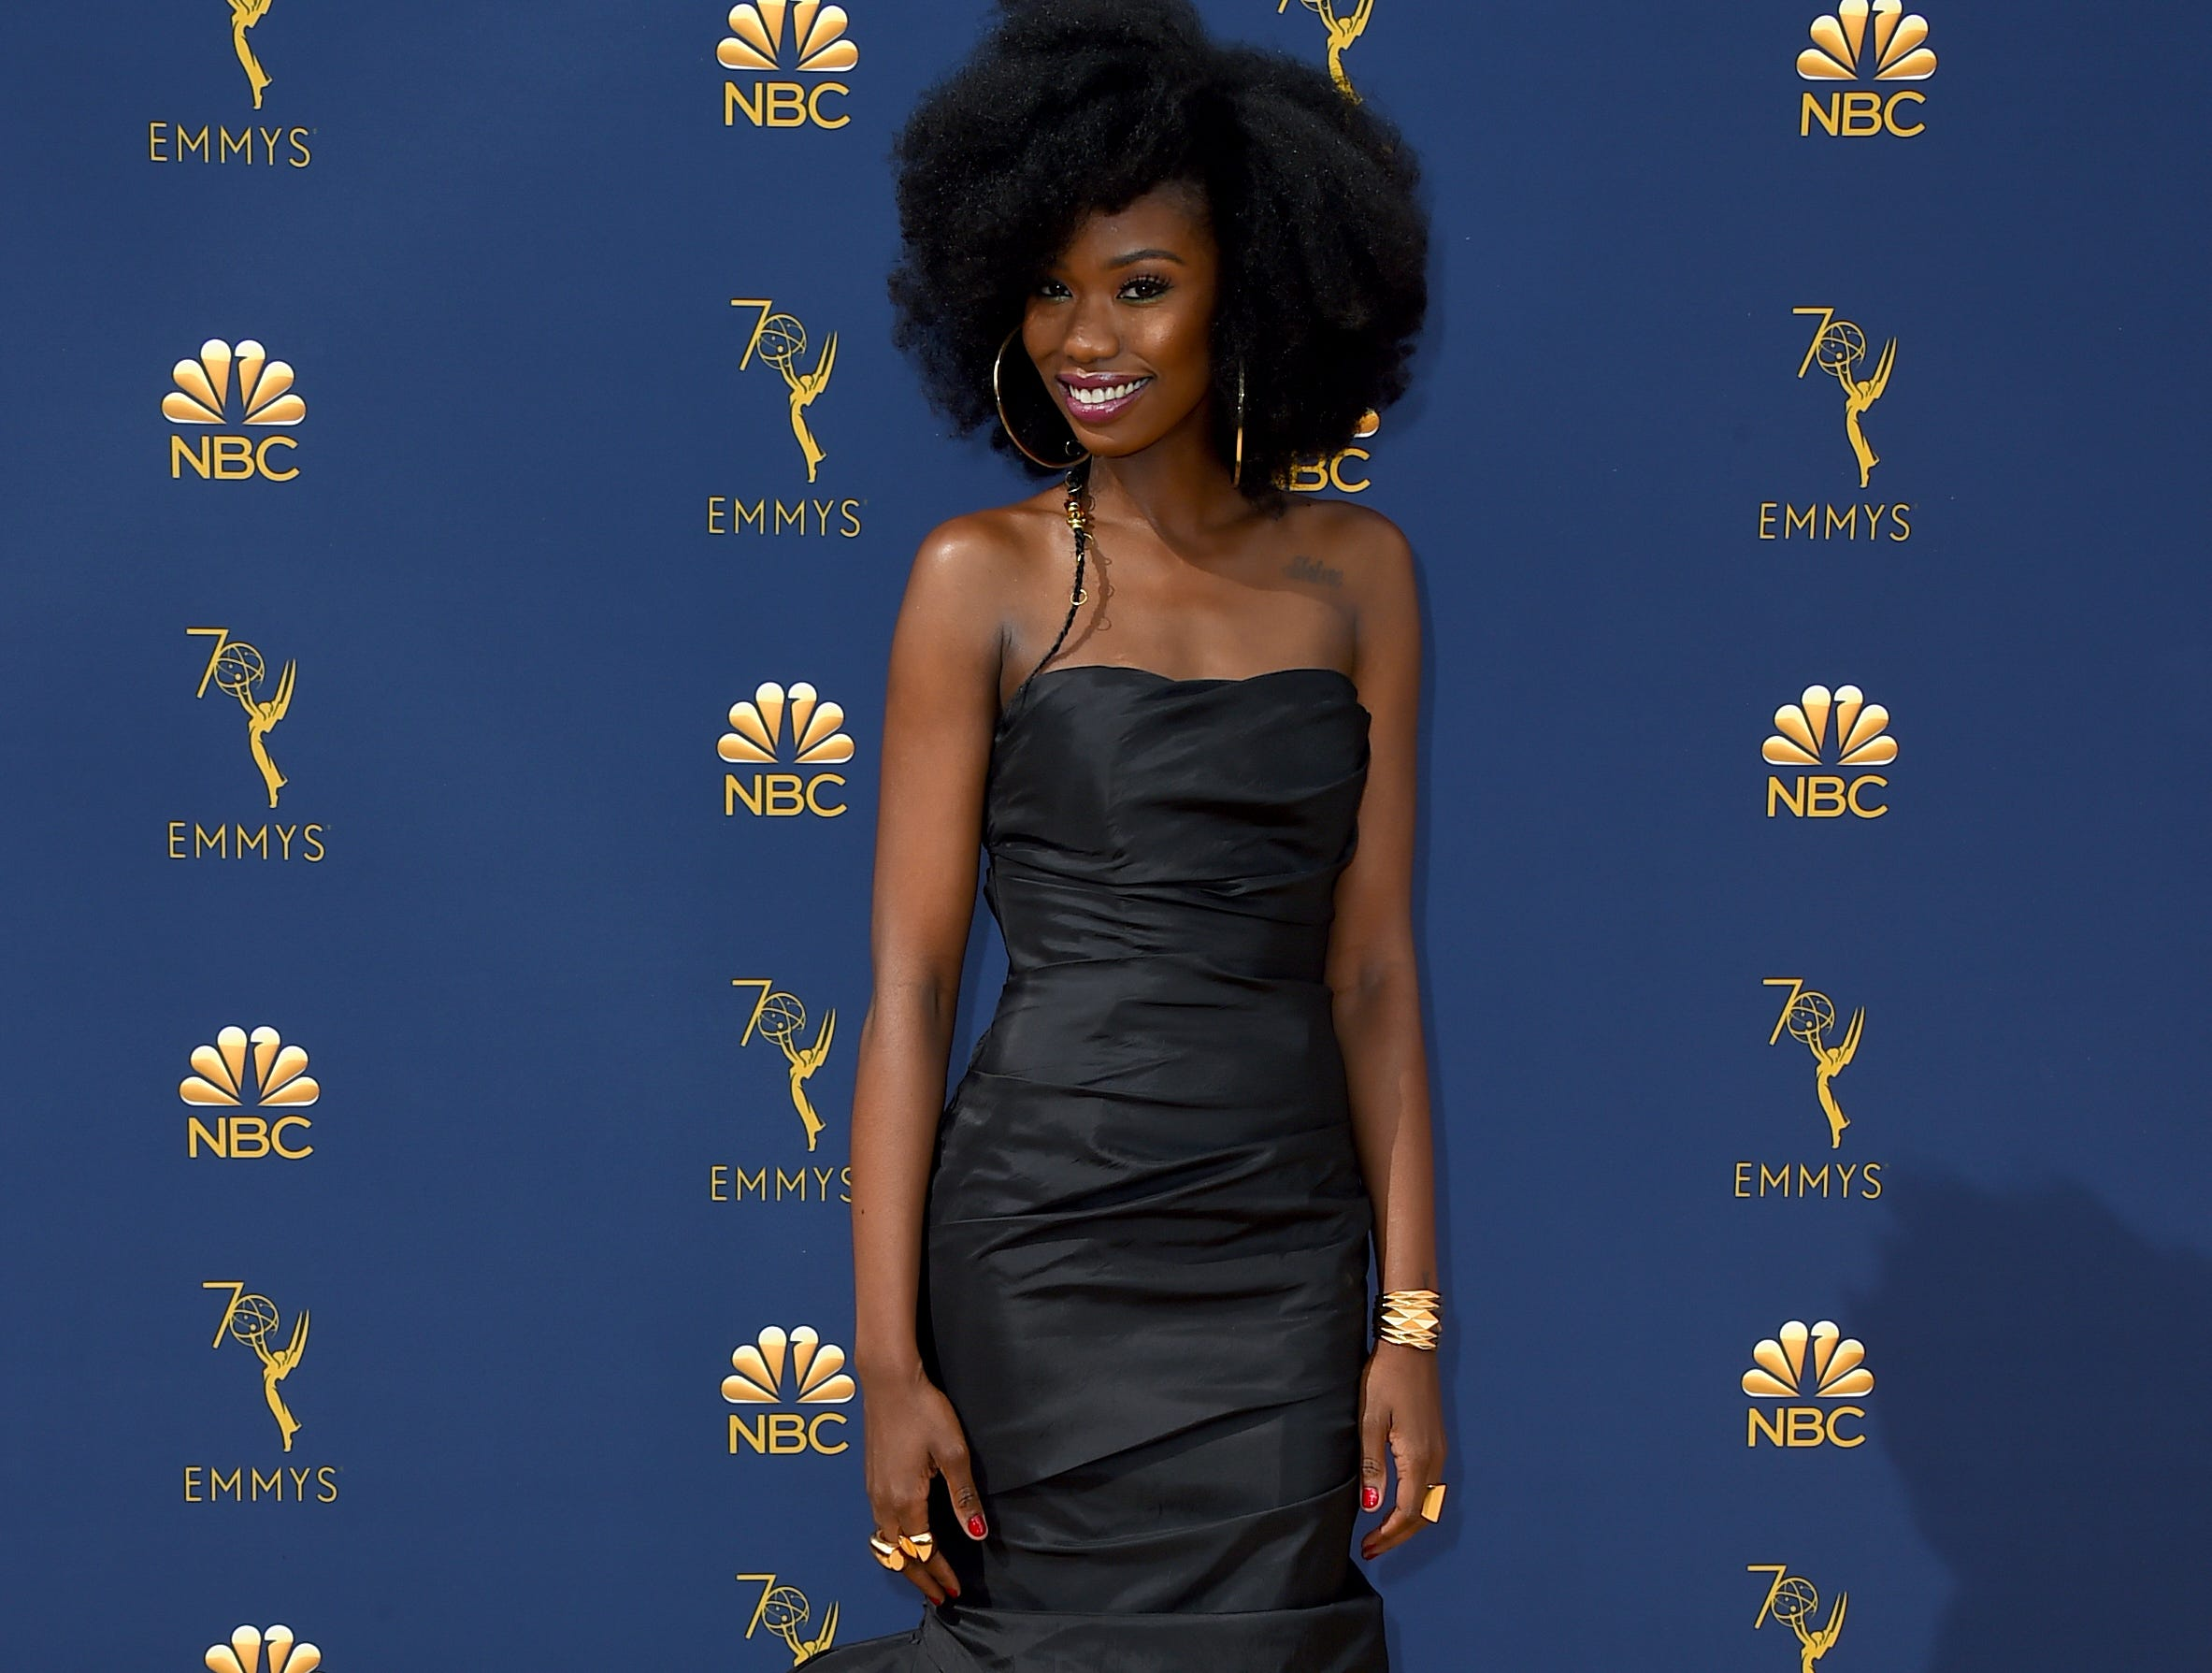 Xosha Roquemore arrives at the 70th Primetime Emmy Awards on Monday, Sept. 17, 2018, at the Microsoft Theater in Los Angeles.